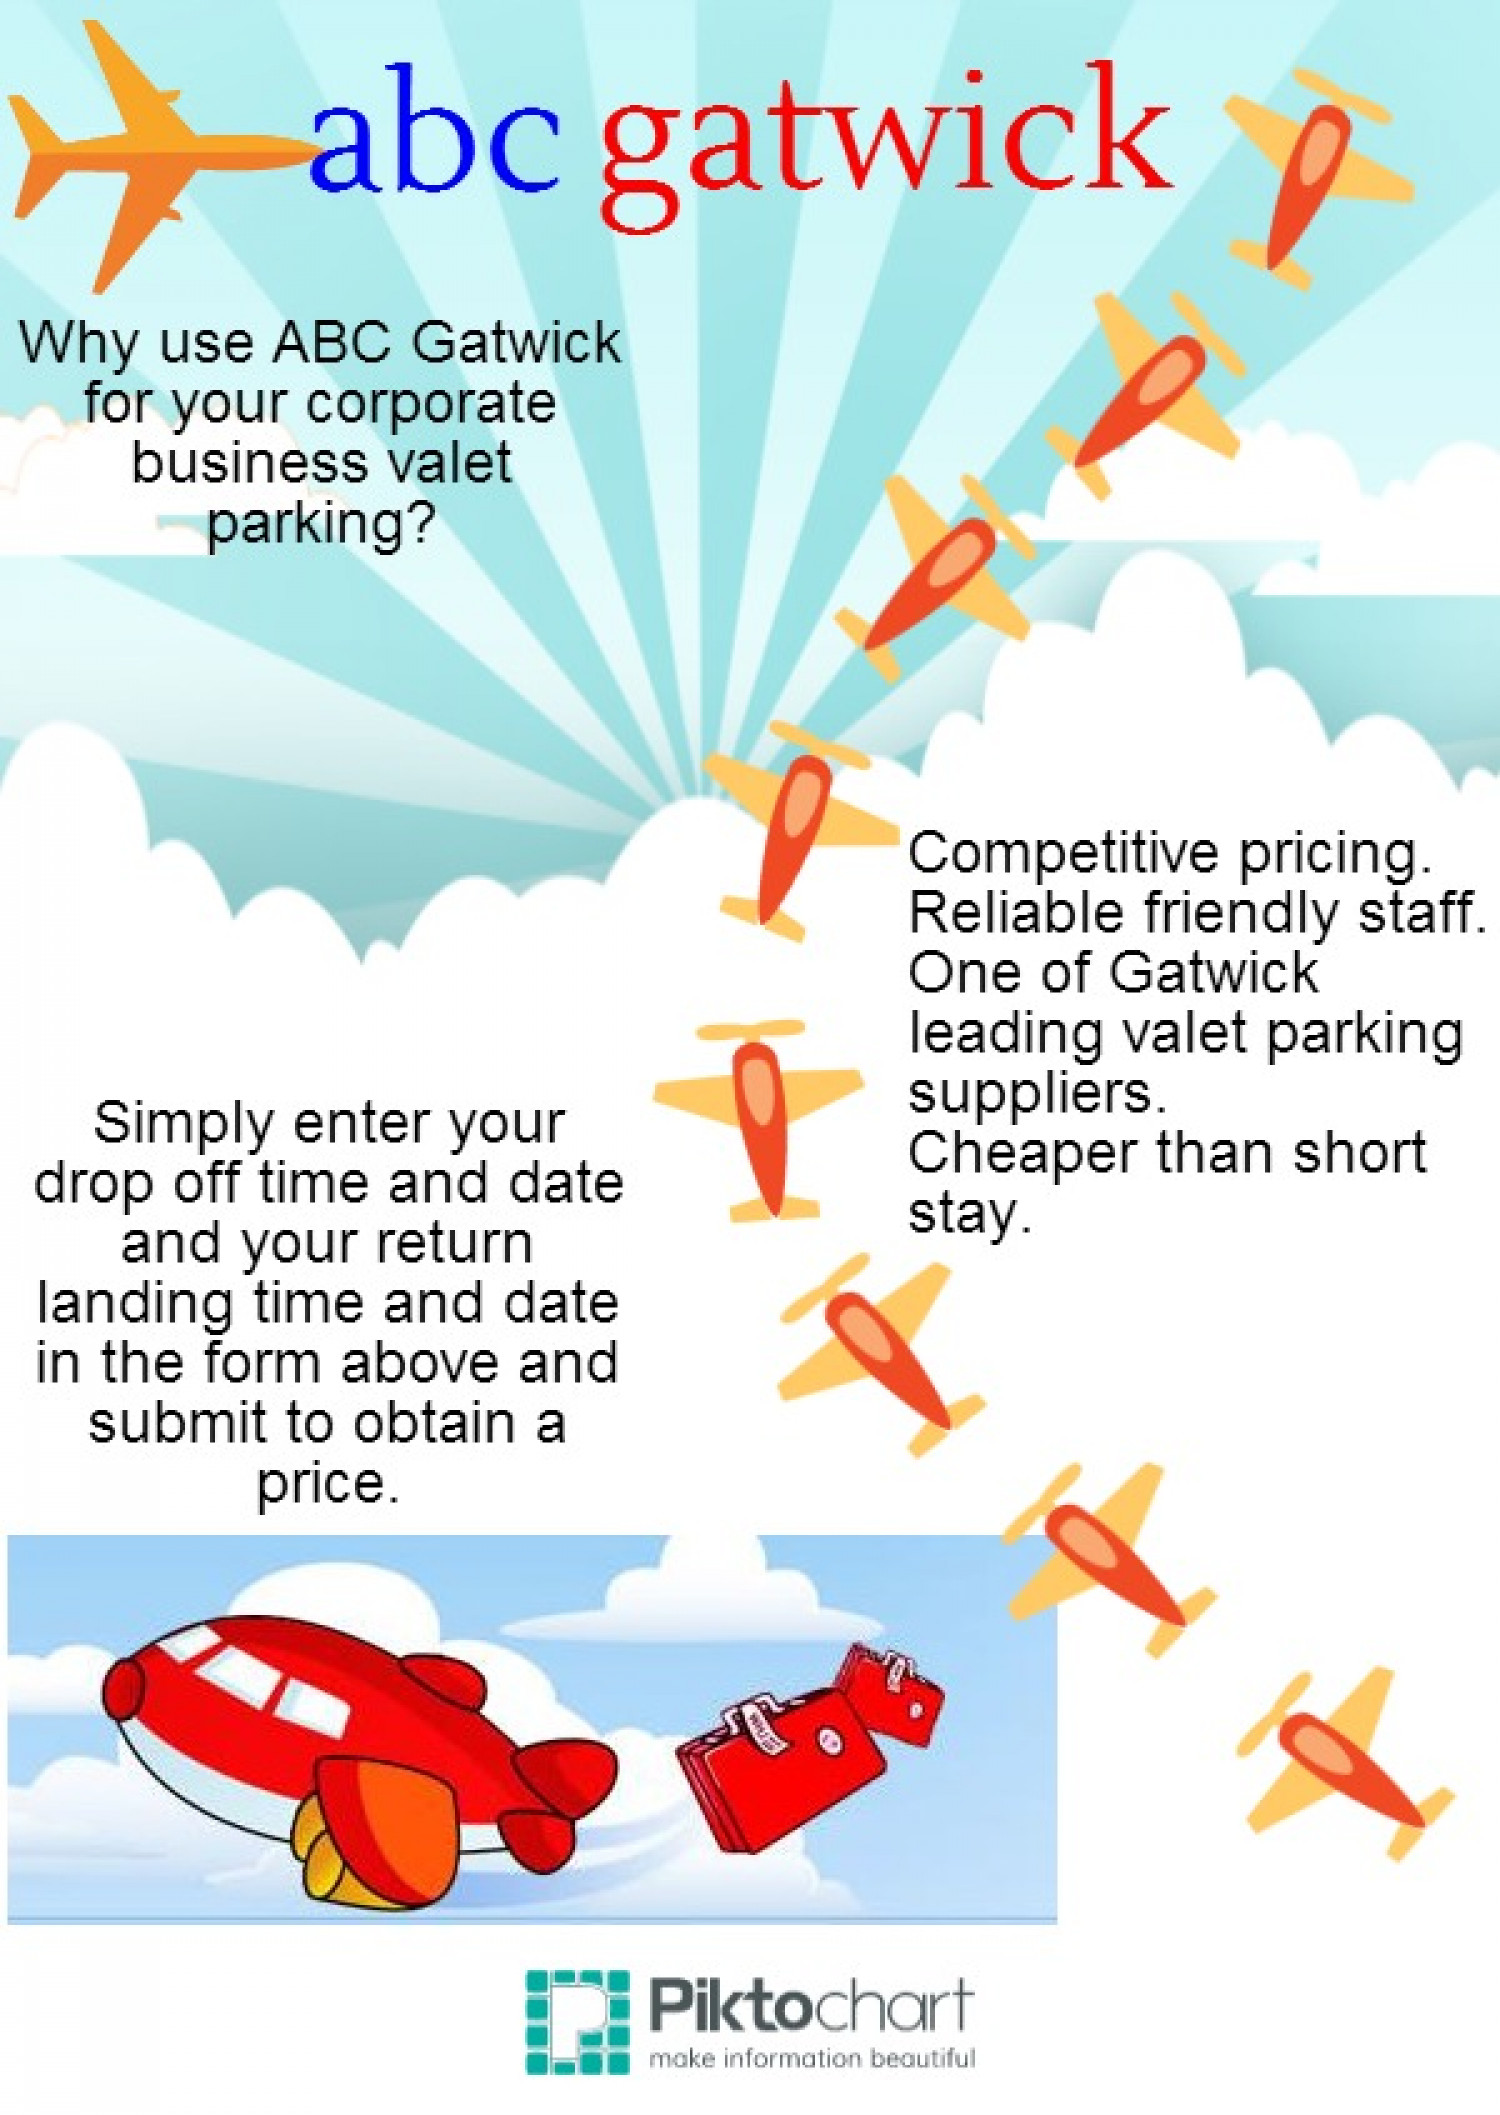 Abc gatwick services visual abc gatwick services infographic kristyandbryce Images